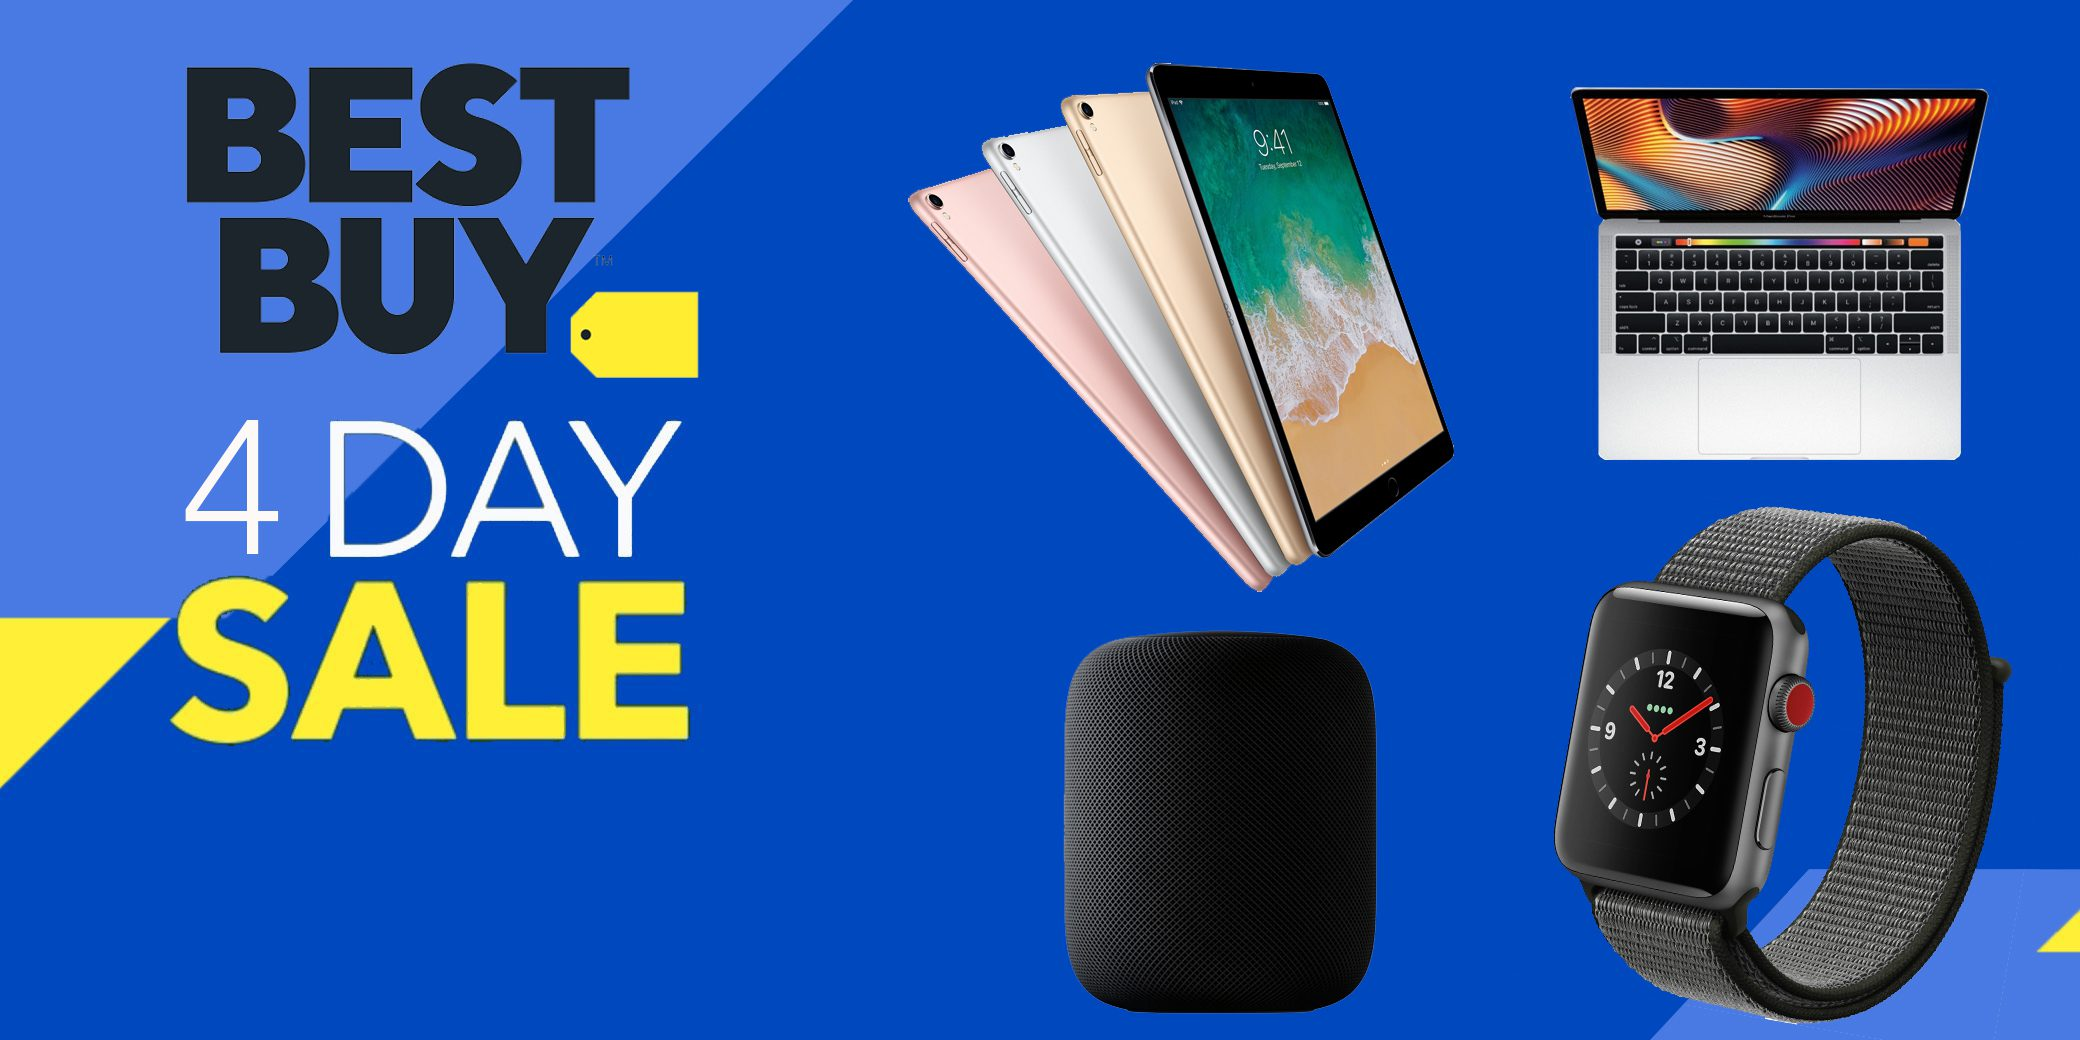 9to5Toys Last Call: Best Buy Labor Day Sale, Samsung DeX Pad